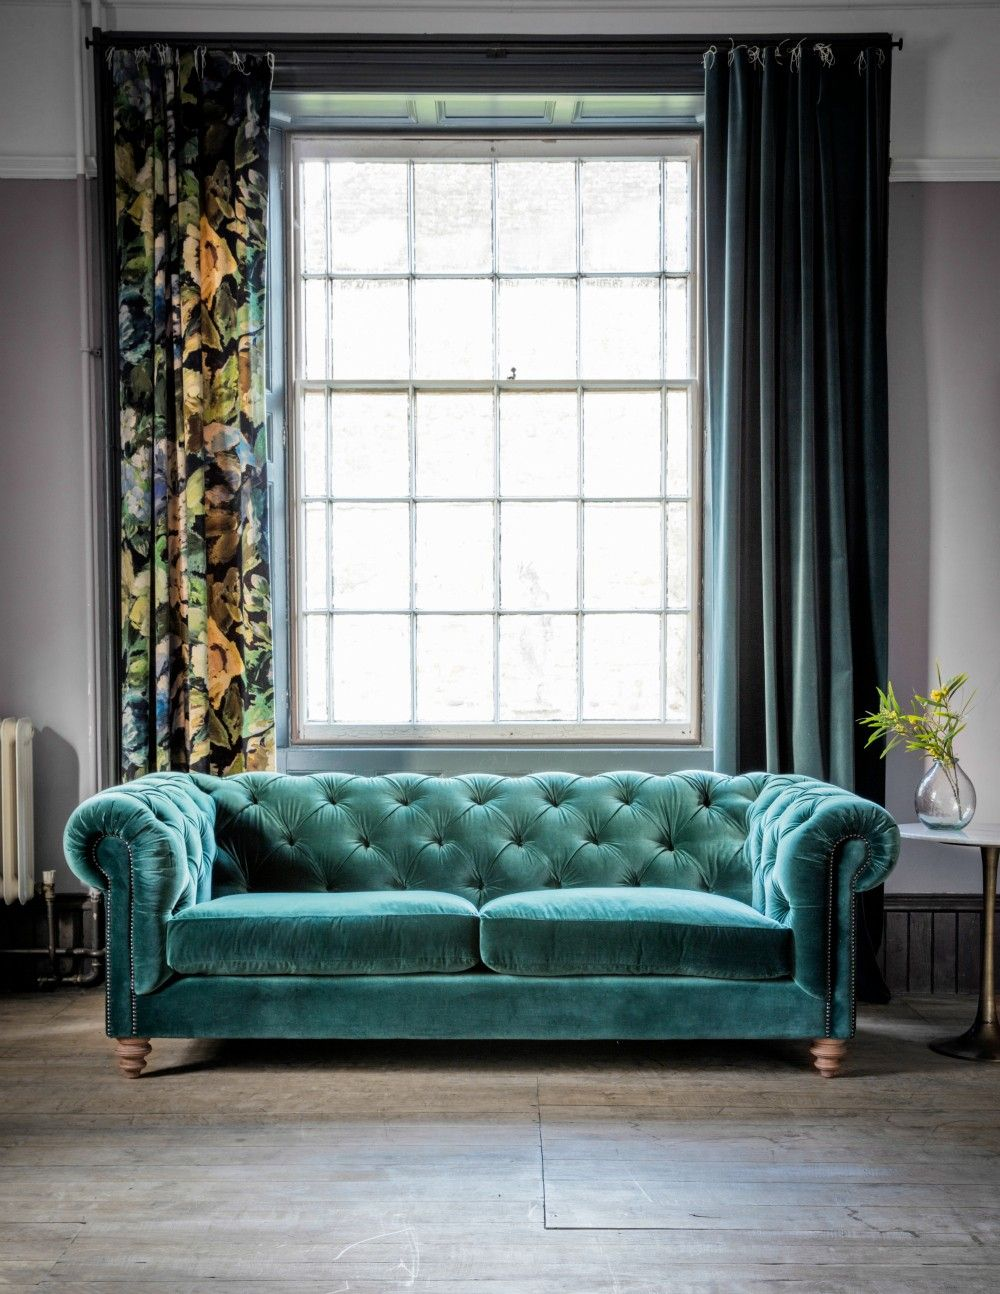 Attractive Green Velvet Sofa With Armchairs For Living Room: Velvet Loveseat  Sofa And Green Velvet